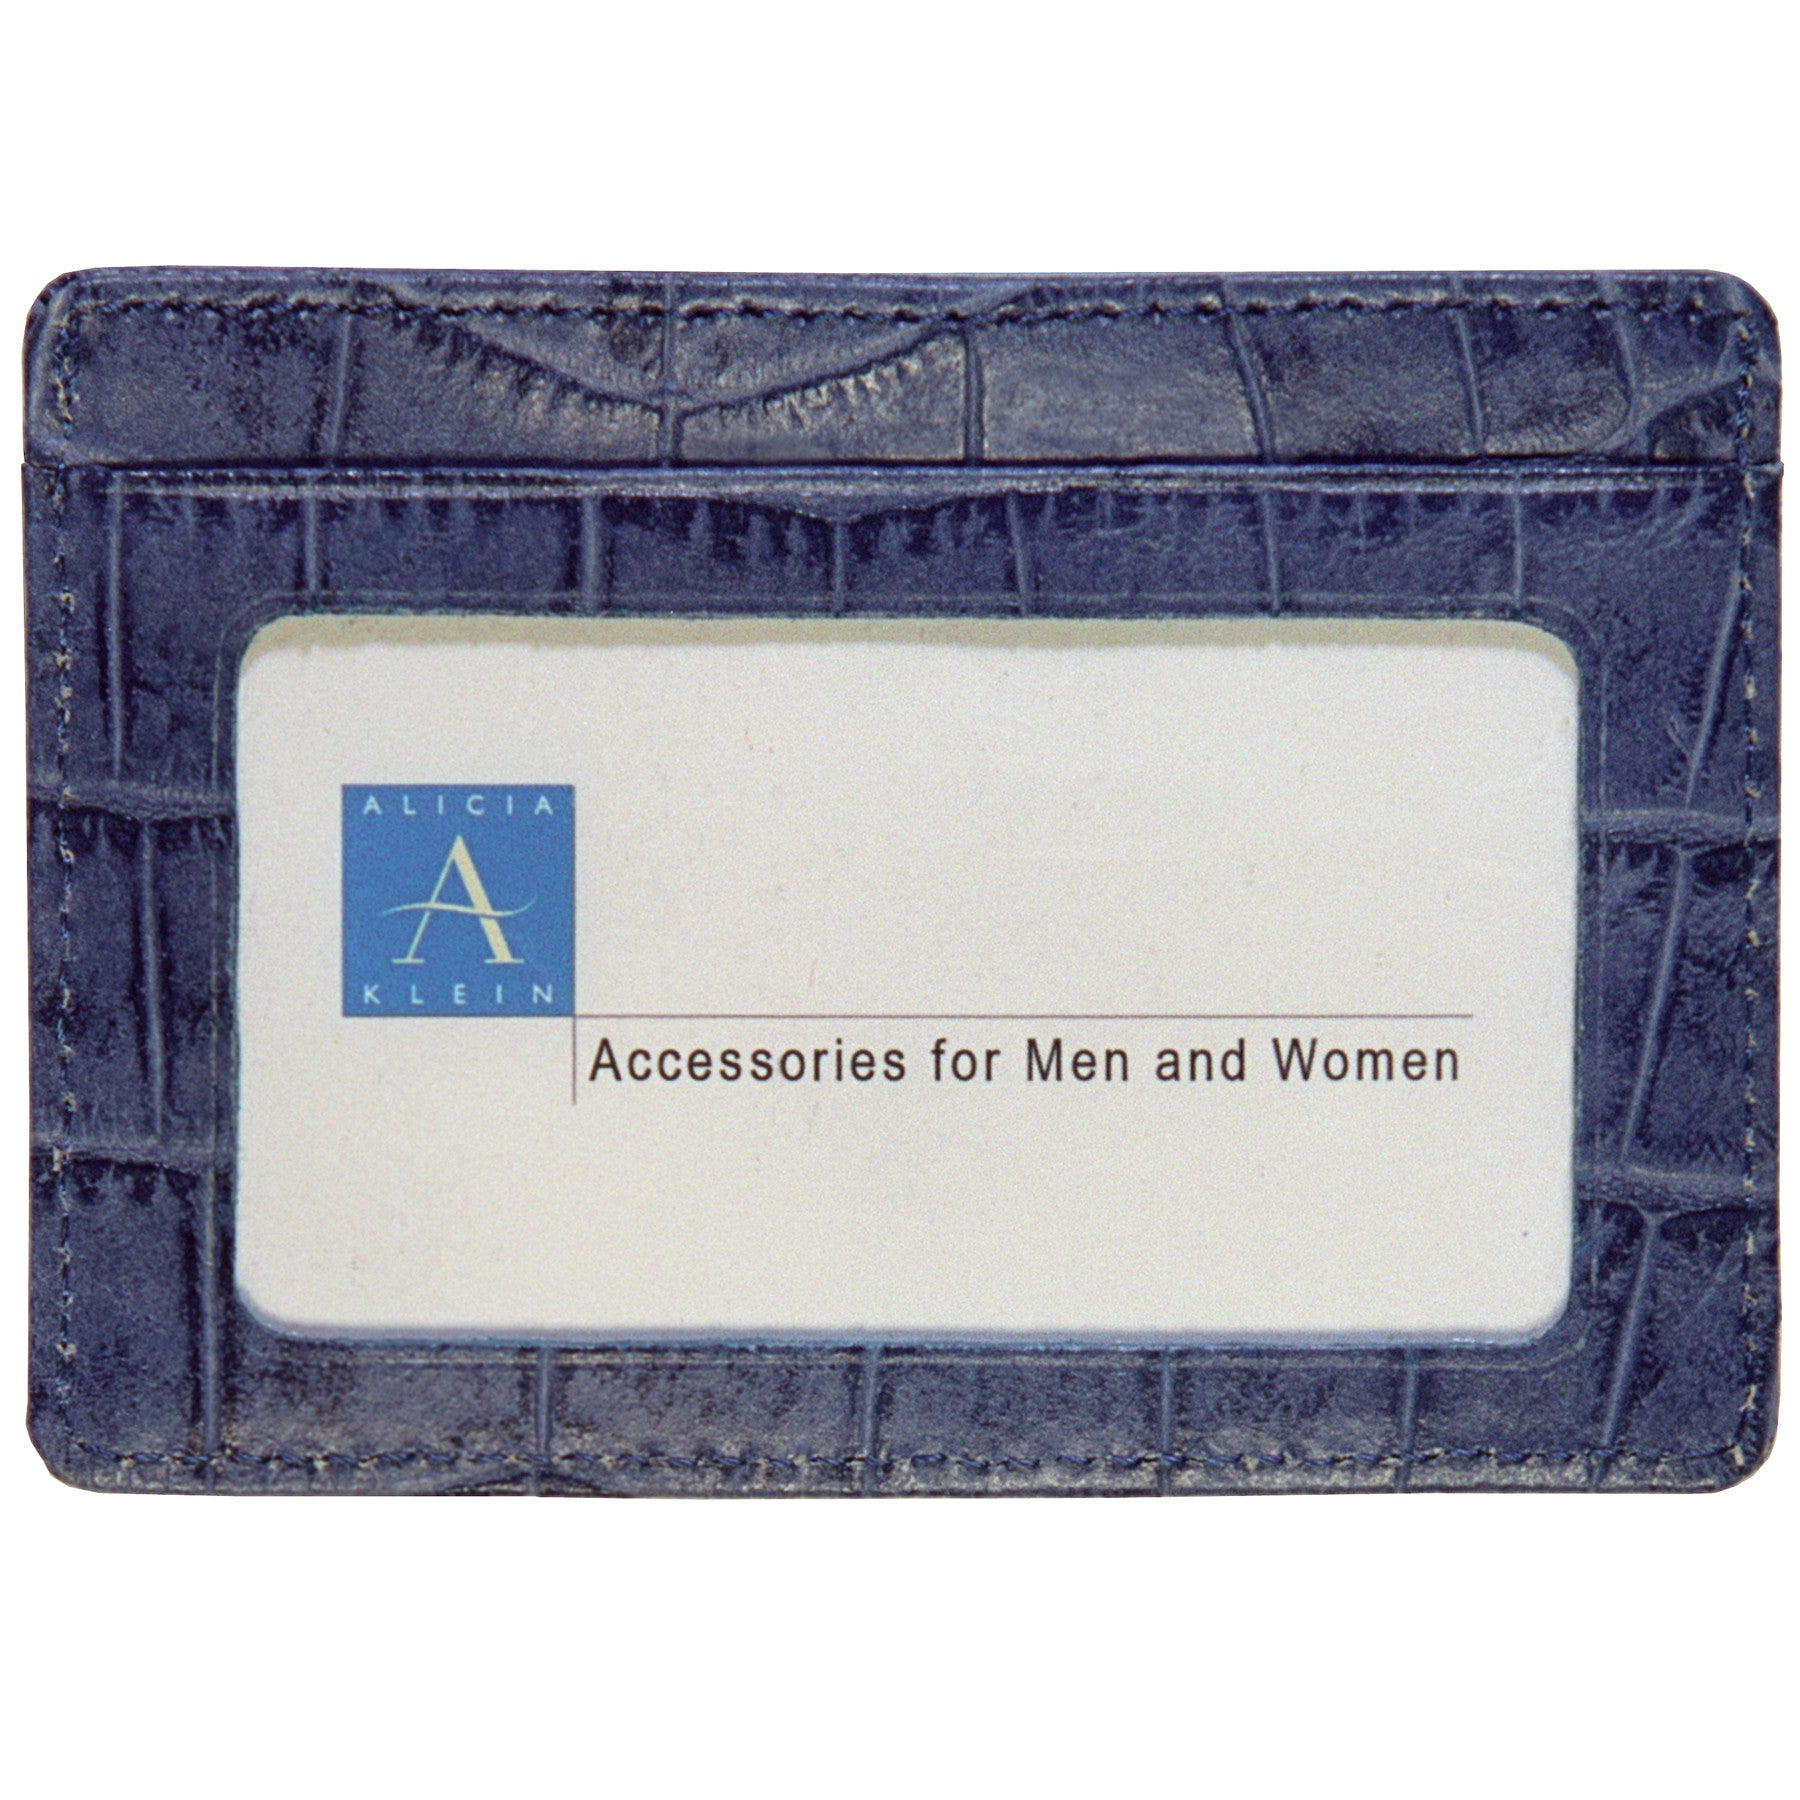 Alicia Klein leather card holder, denim blue croco